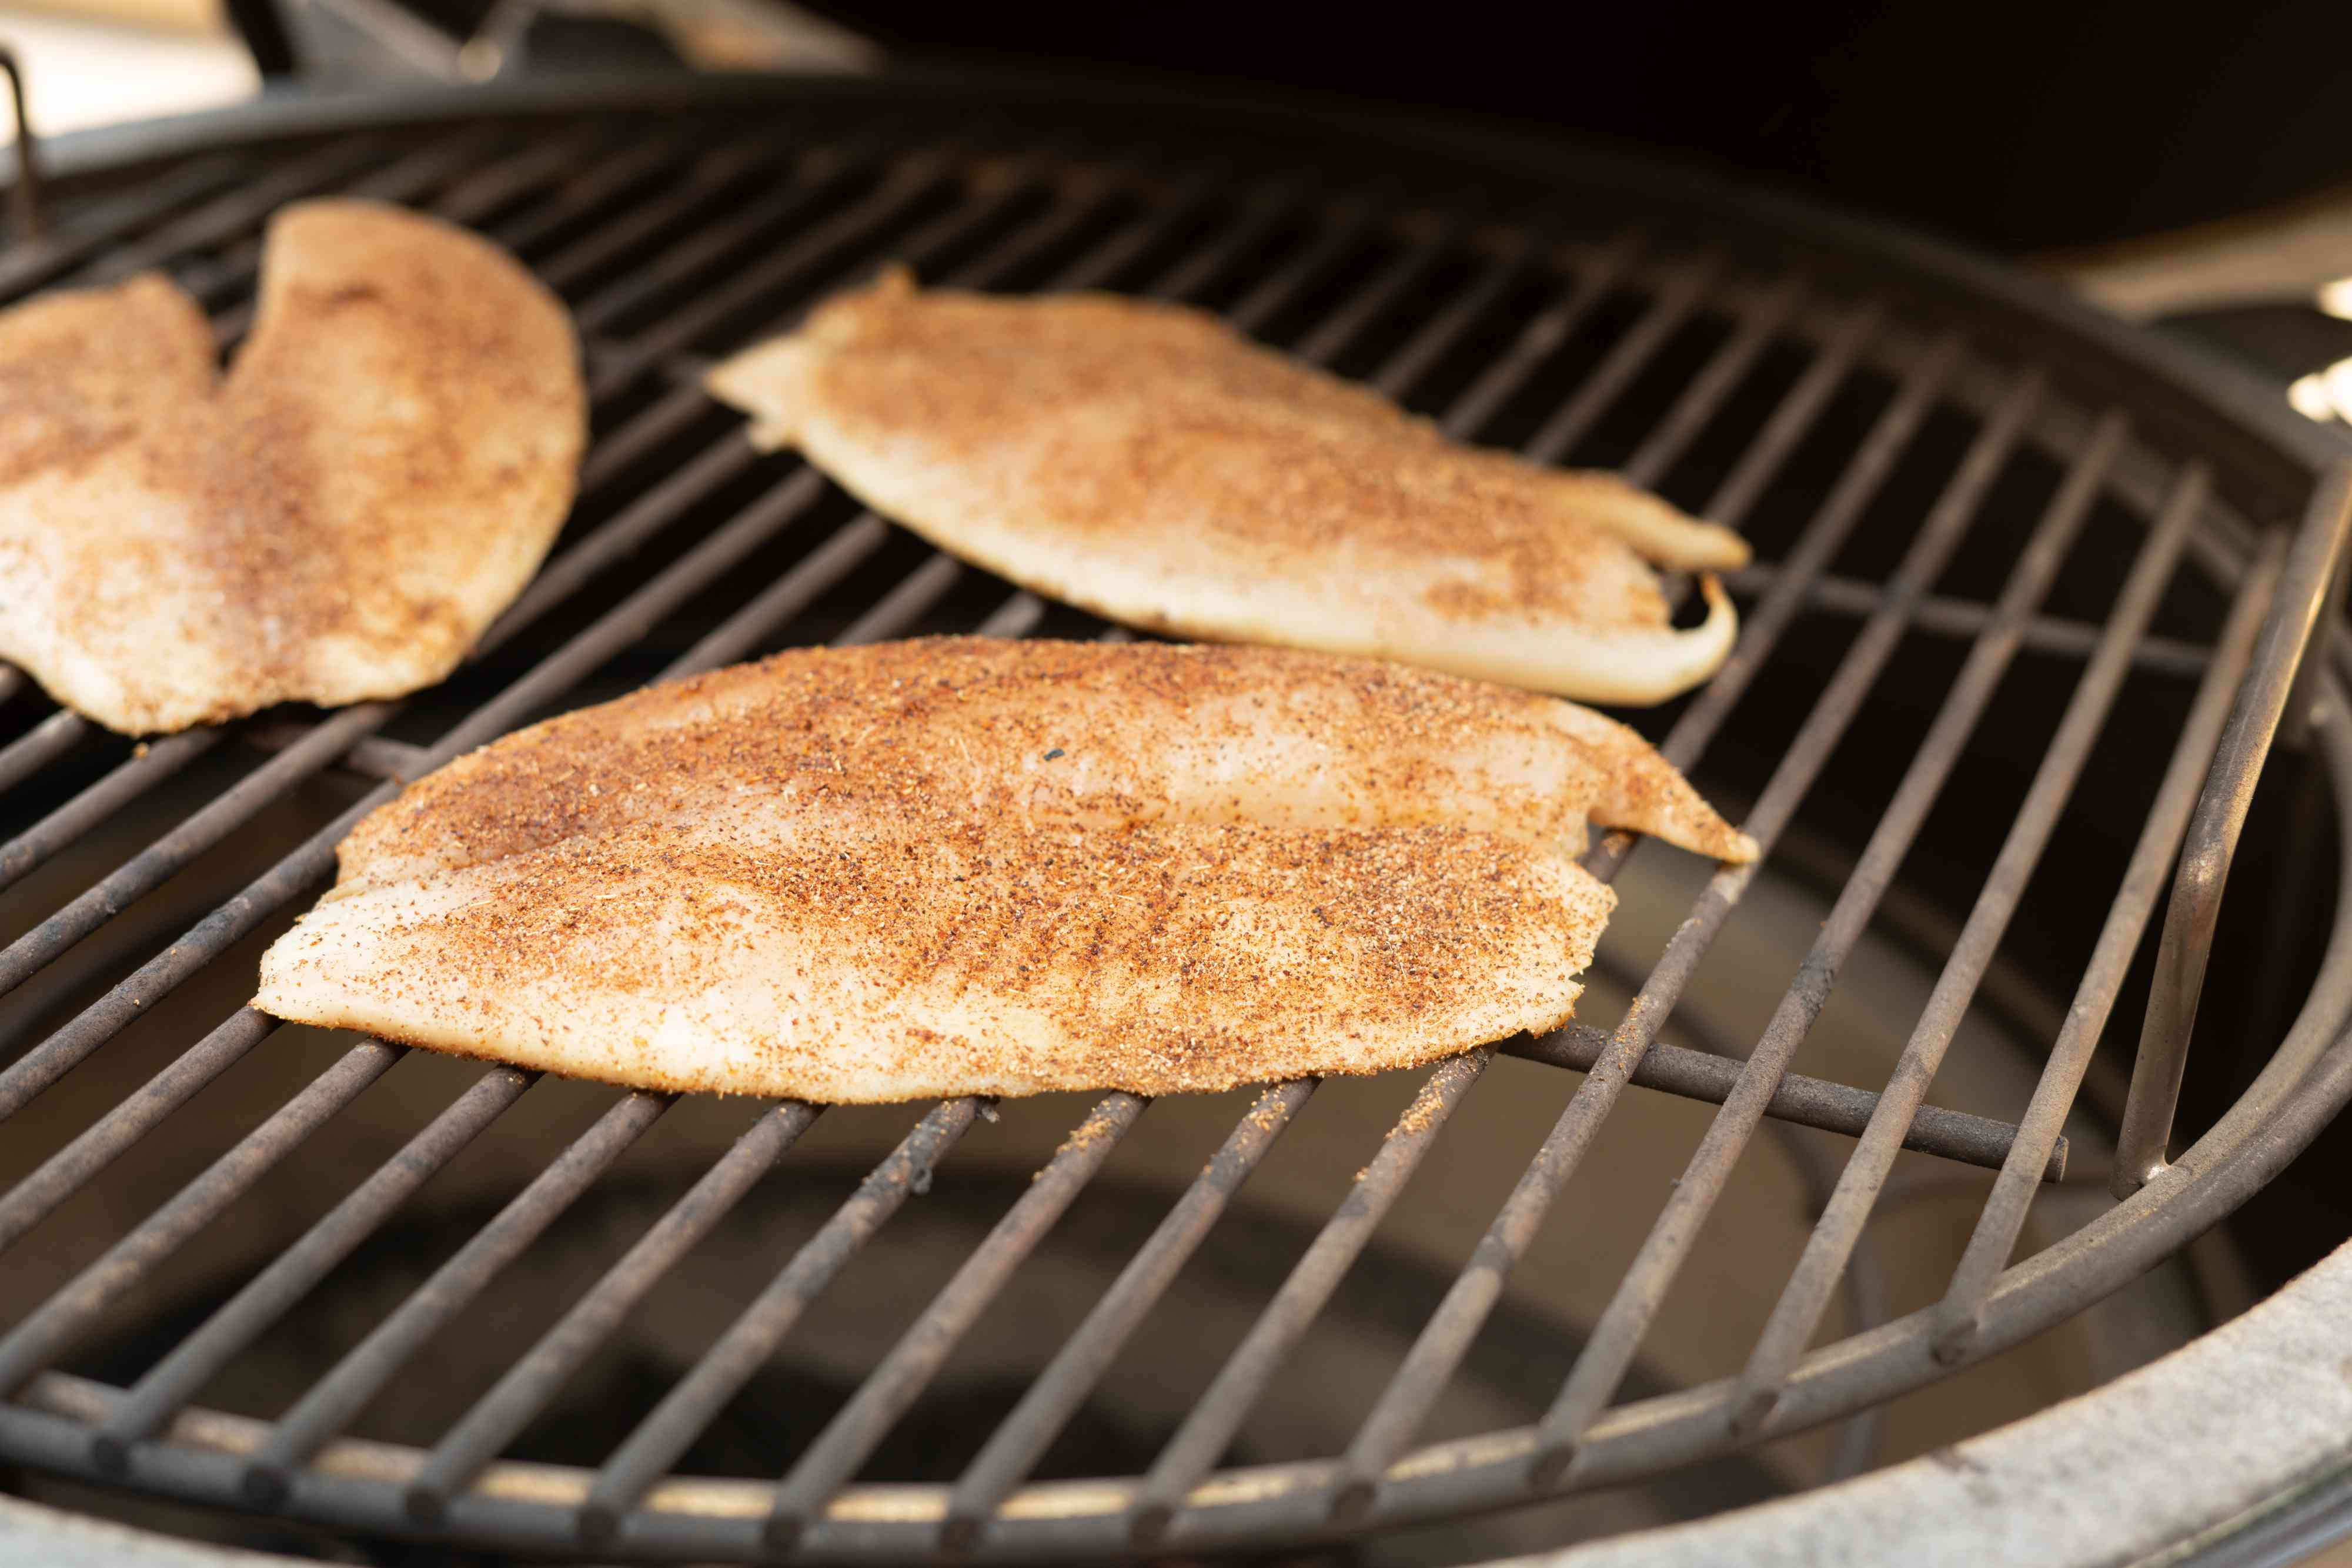 tilapia cooking on the grill